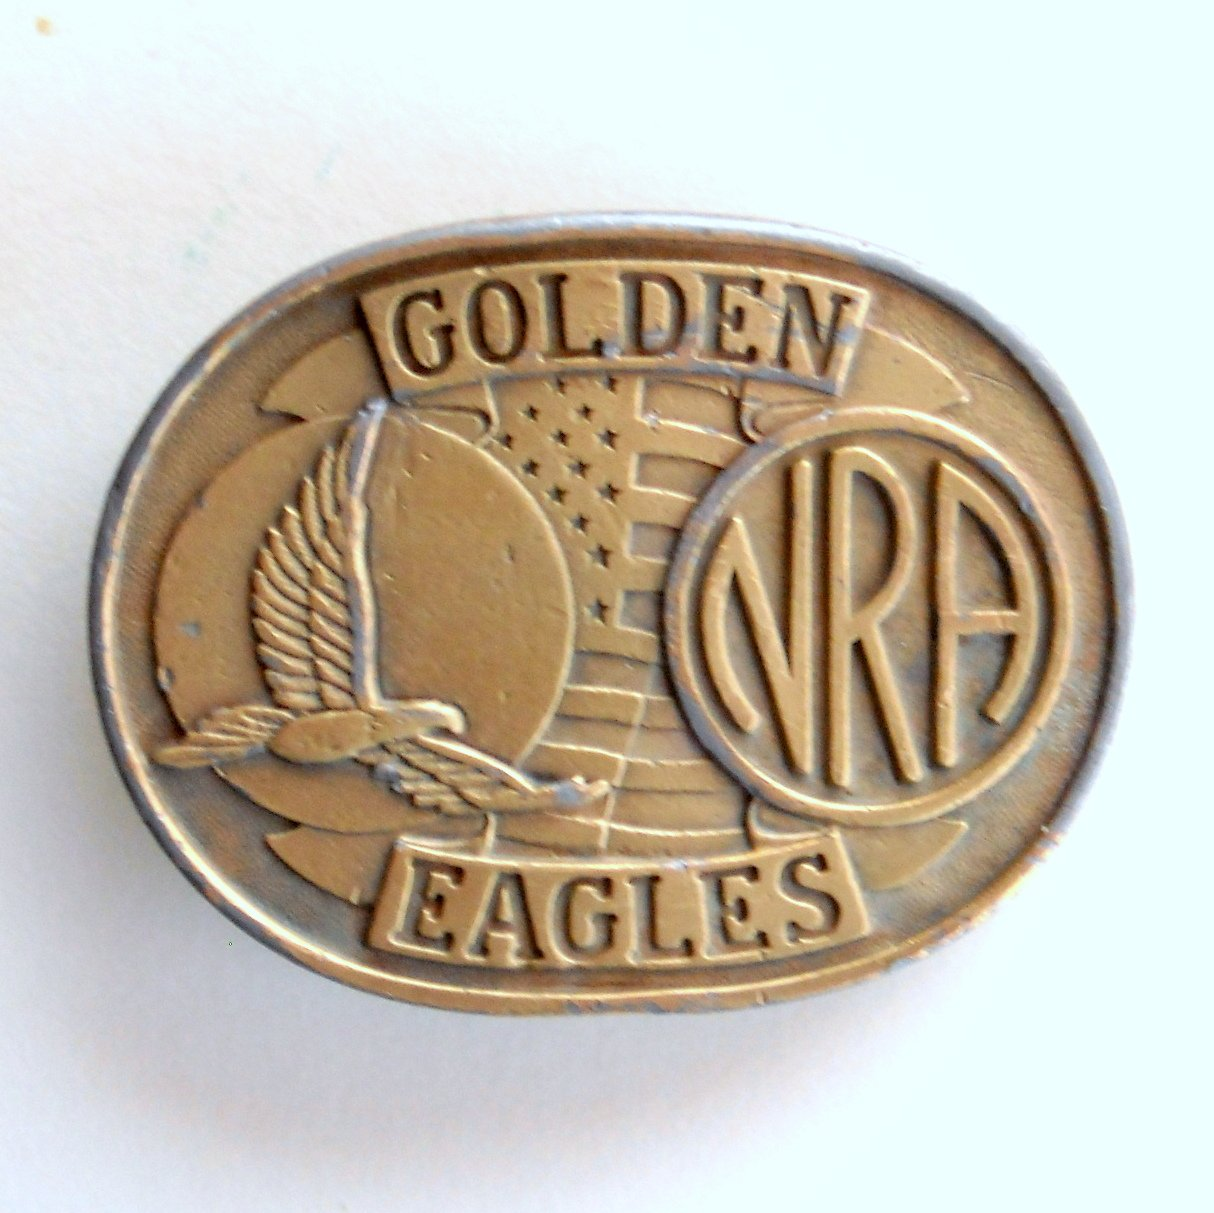 NRA Golden Eagles Brass Alloy Belt Buckle